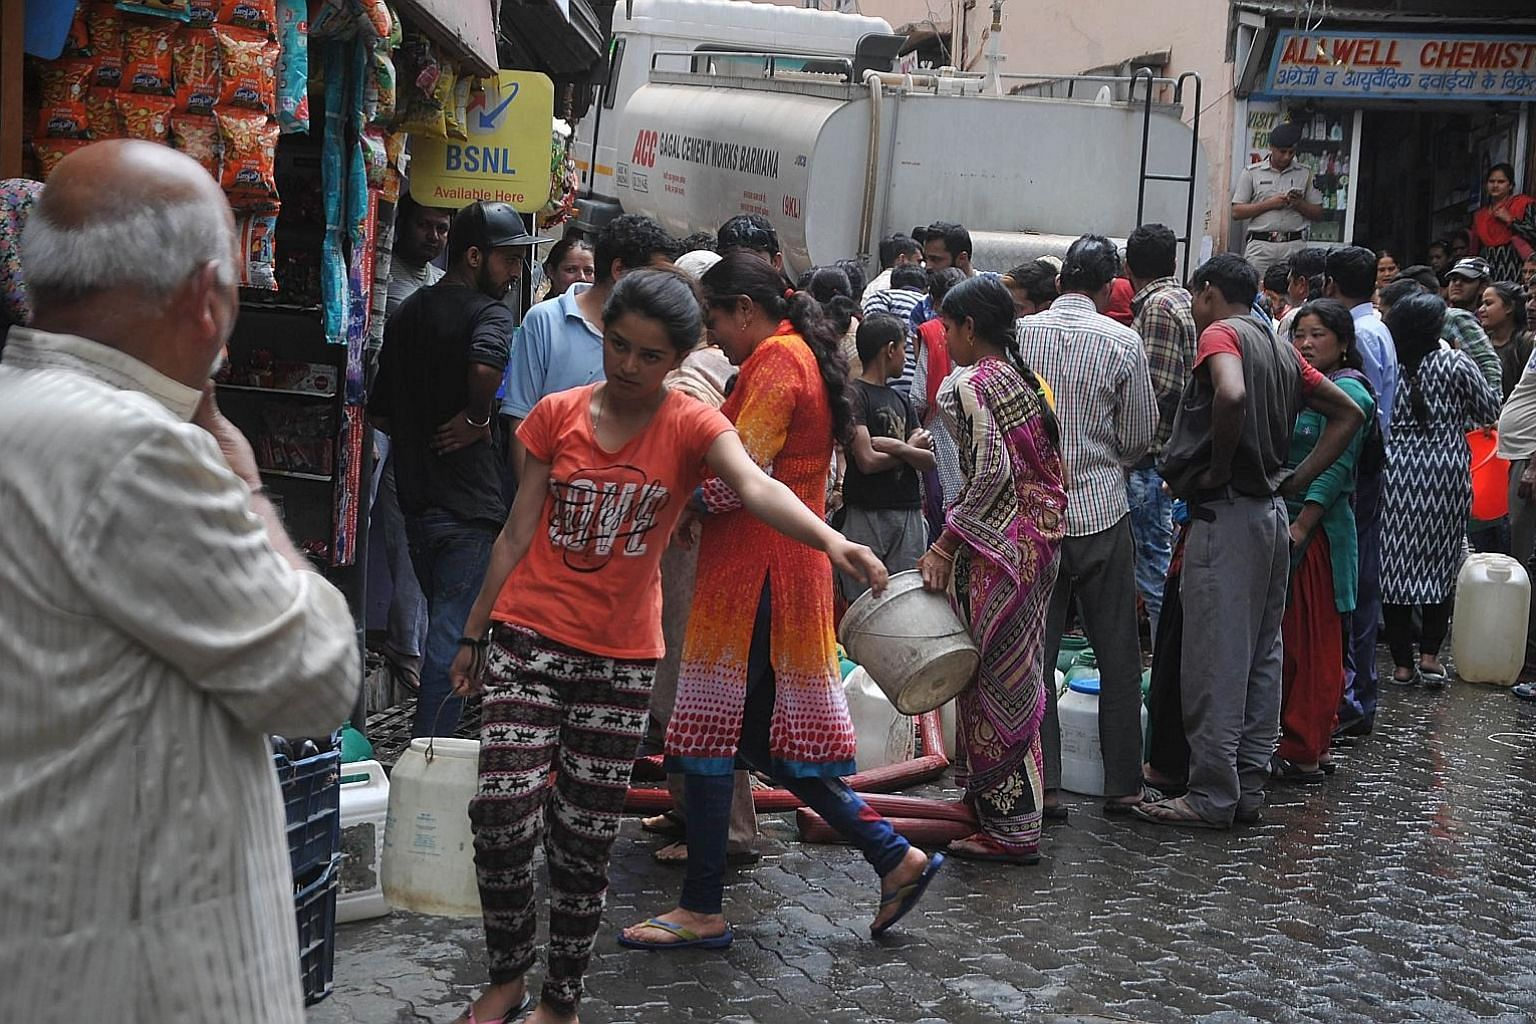 Shimla residents gathering to collect water in buckets from a water tanker yesterday. They are getting water once a week, compared with up to several times a day before the drought.